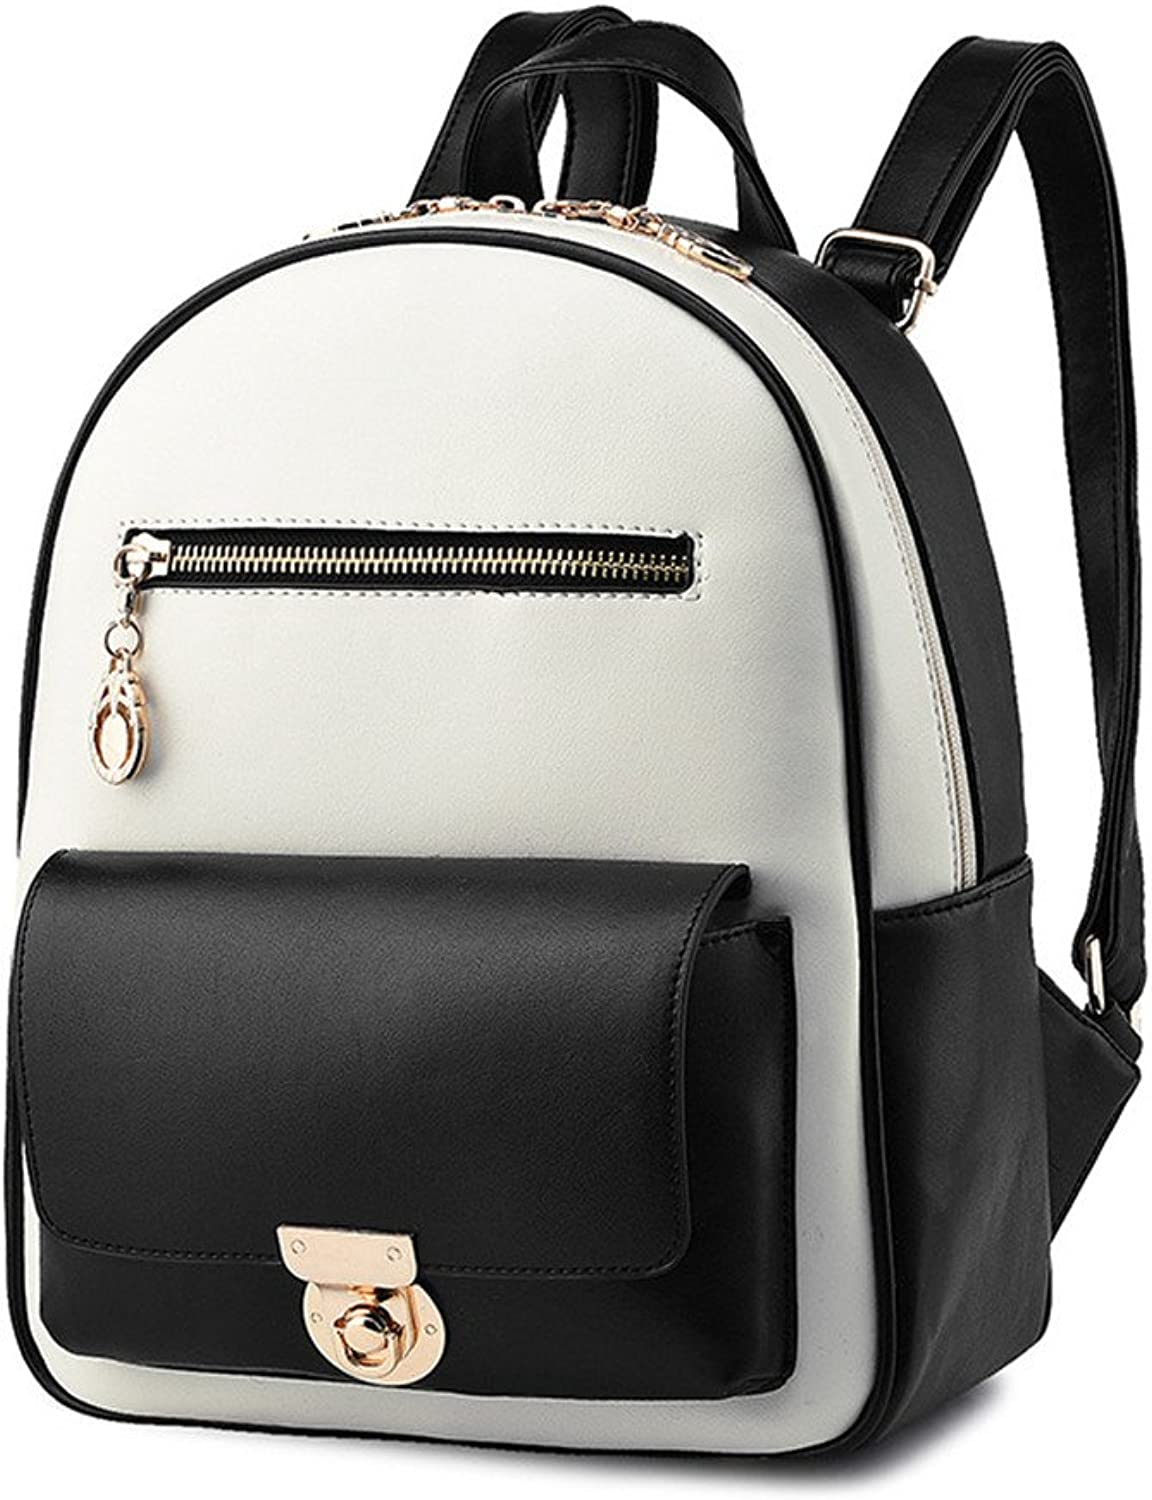 Ms. dual shoulder bags of students' schoolbags mass rucksack Recreation Fashion,A backpack